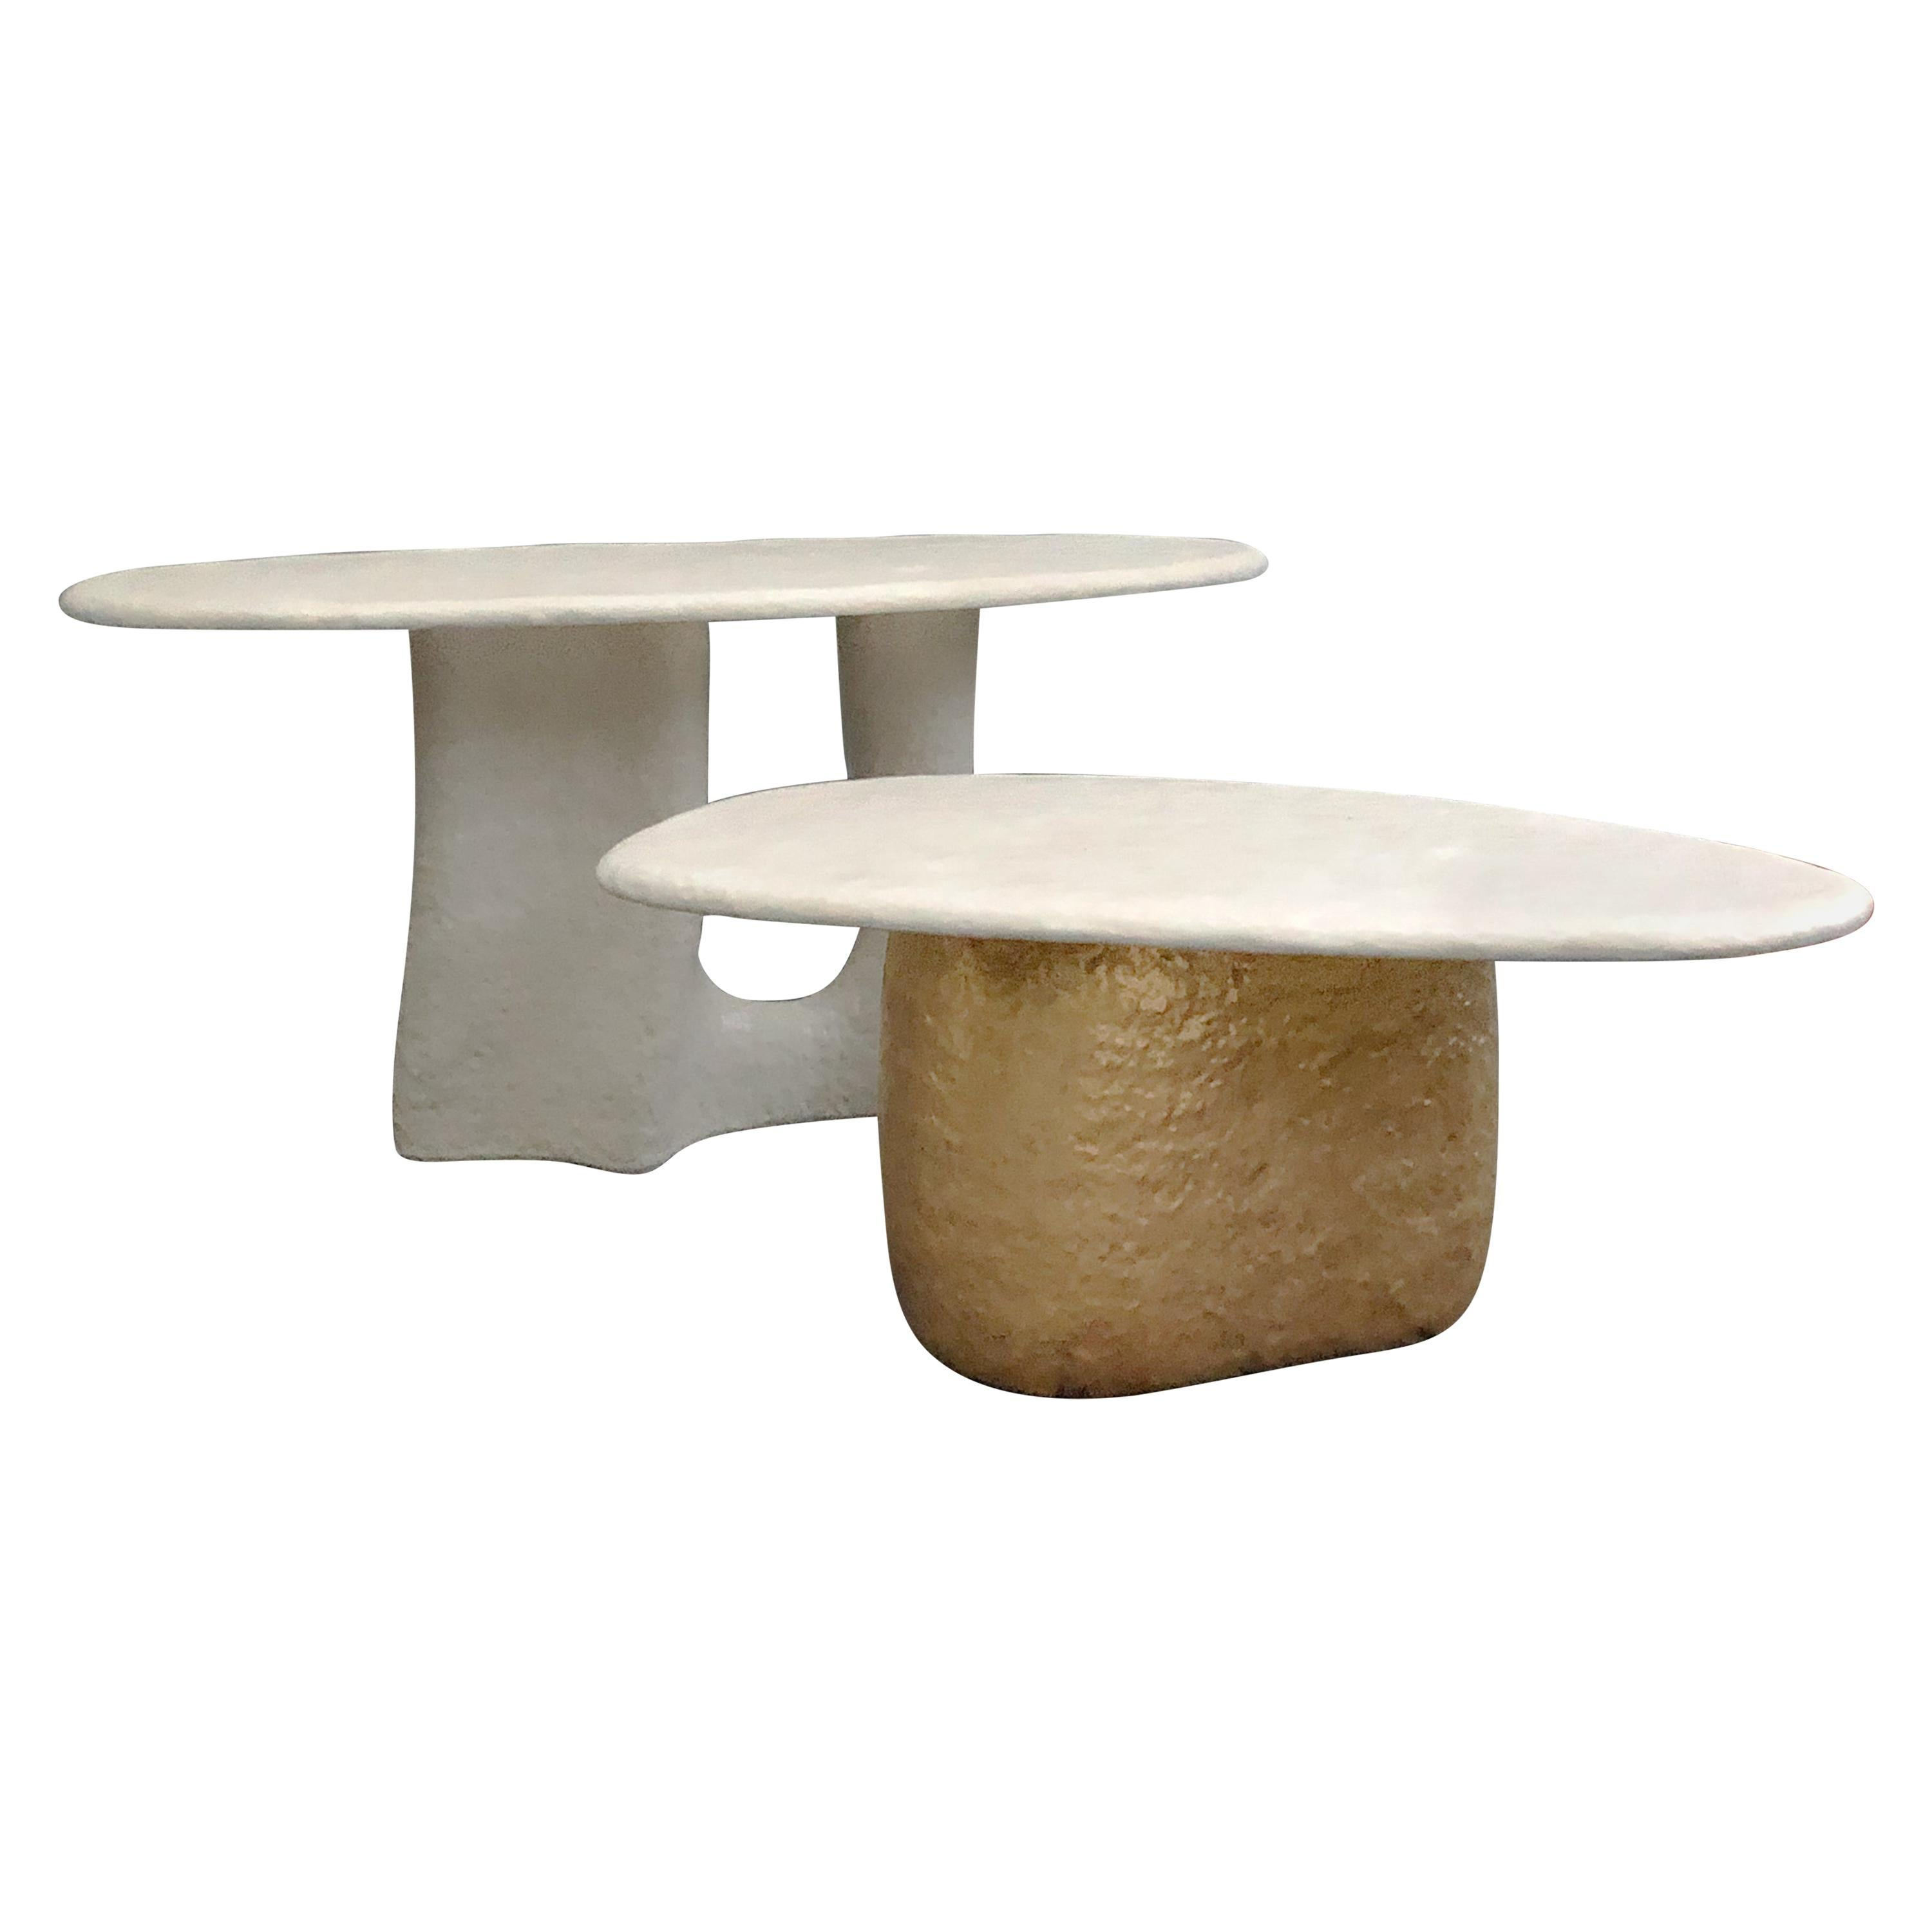 Big Table 'Large' Contemporary Table in Ceramic by MYK Studio